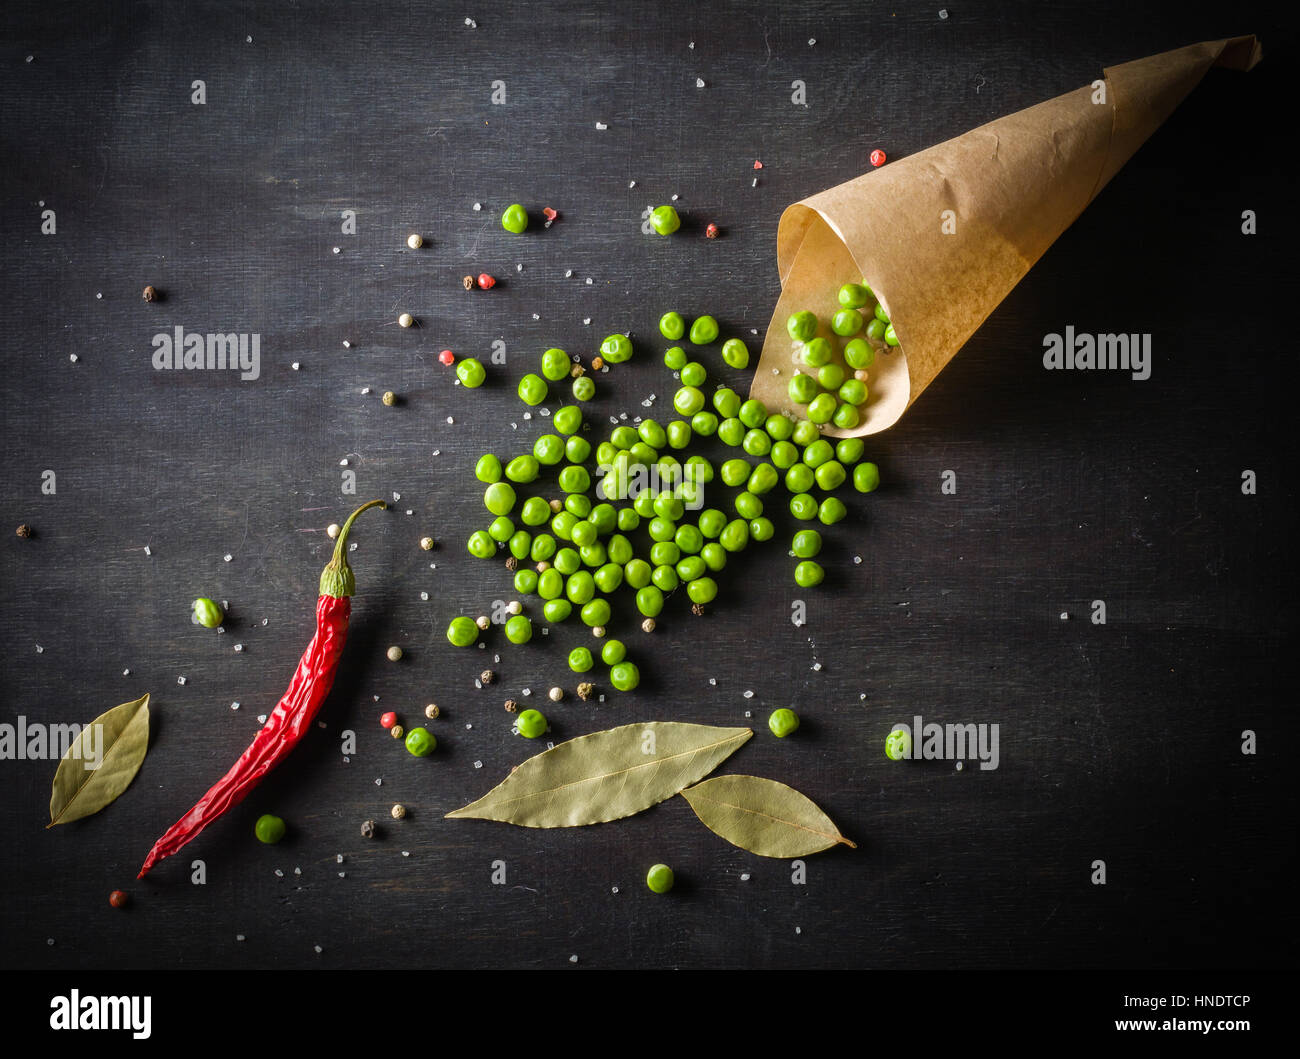 Green peas in a paper bag and chili peppers on a dark wooden background. Top view, space for text - Stock Image